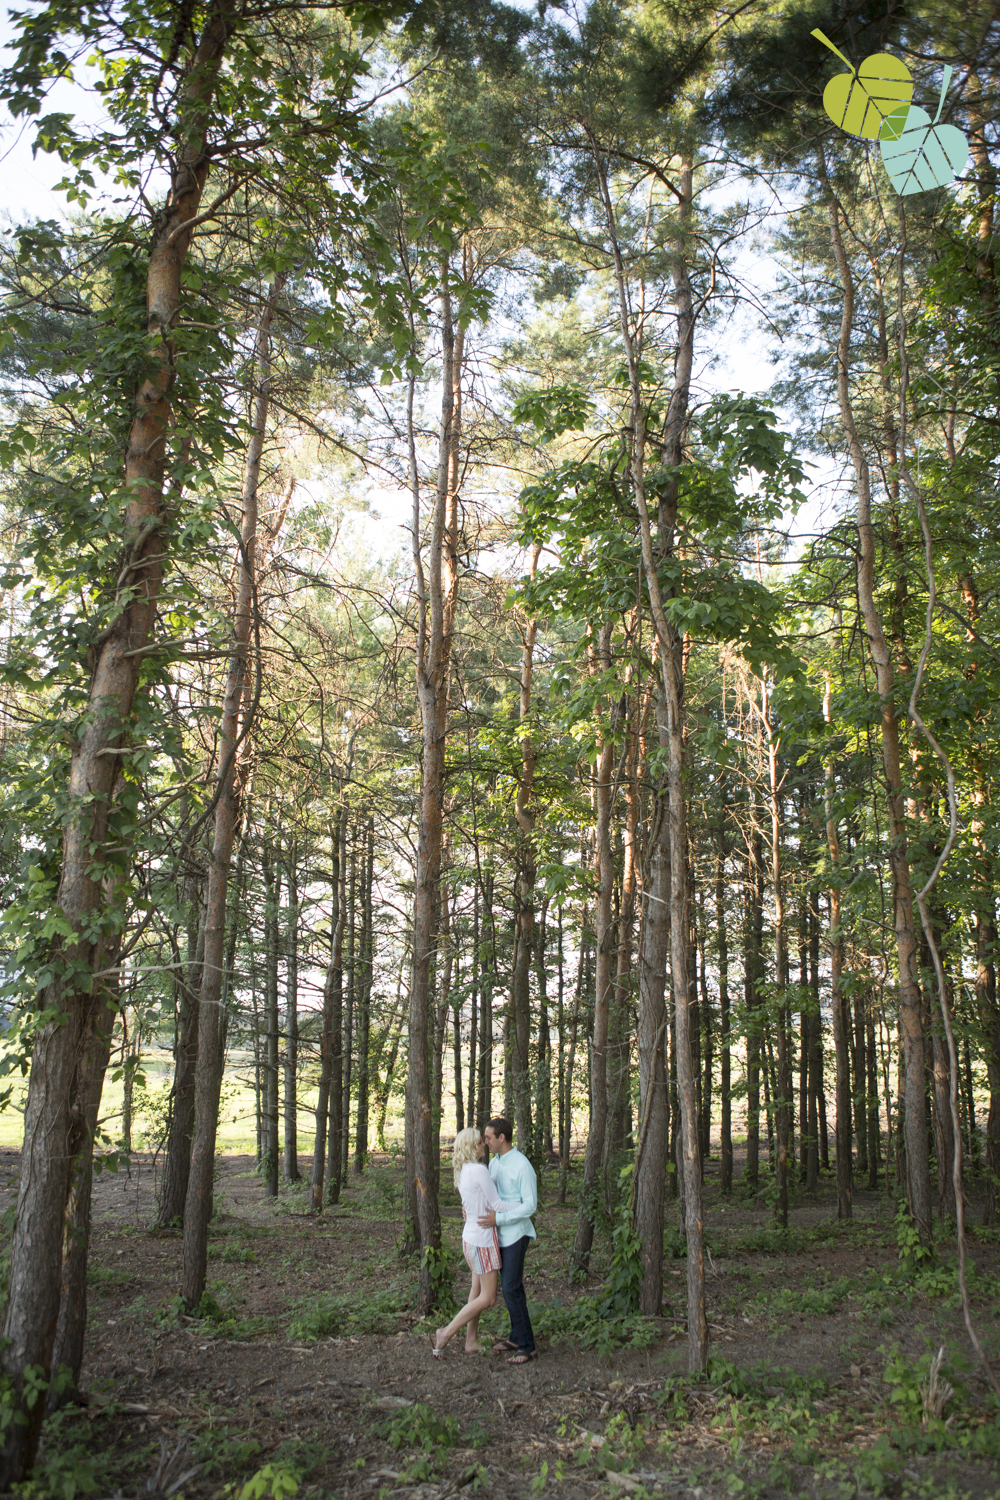 eva-derrick-photography-engagement-photographs-photo-niagara-niagara-on-the-lake-couples-wedding-forest-trees-nature-tall-trees-sunset-love-scenery-scenic-photo.jpg